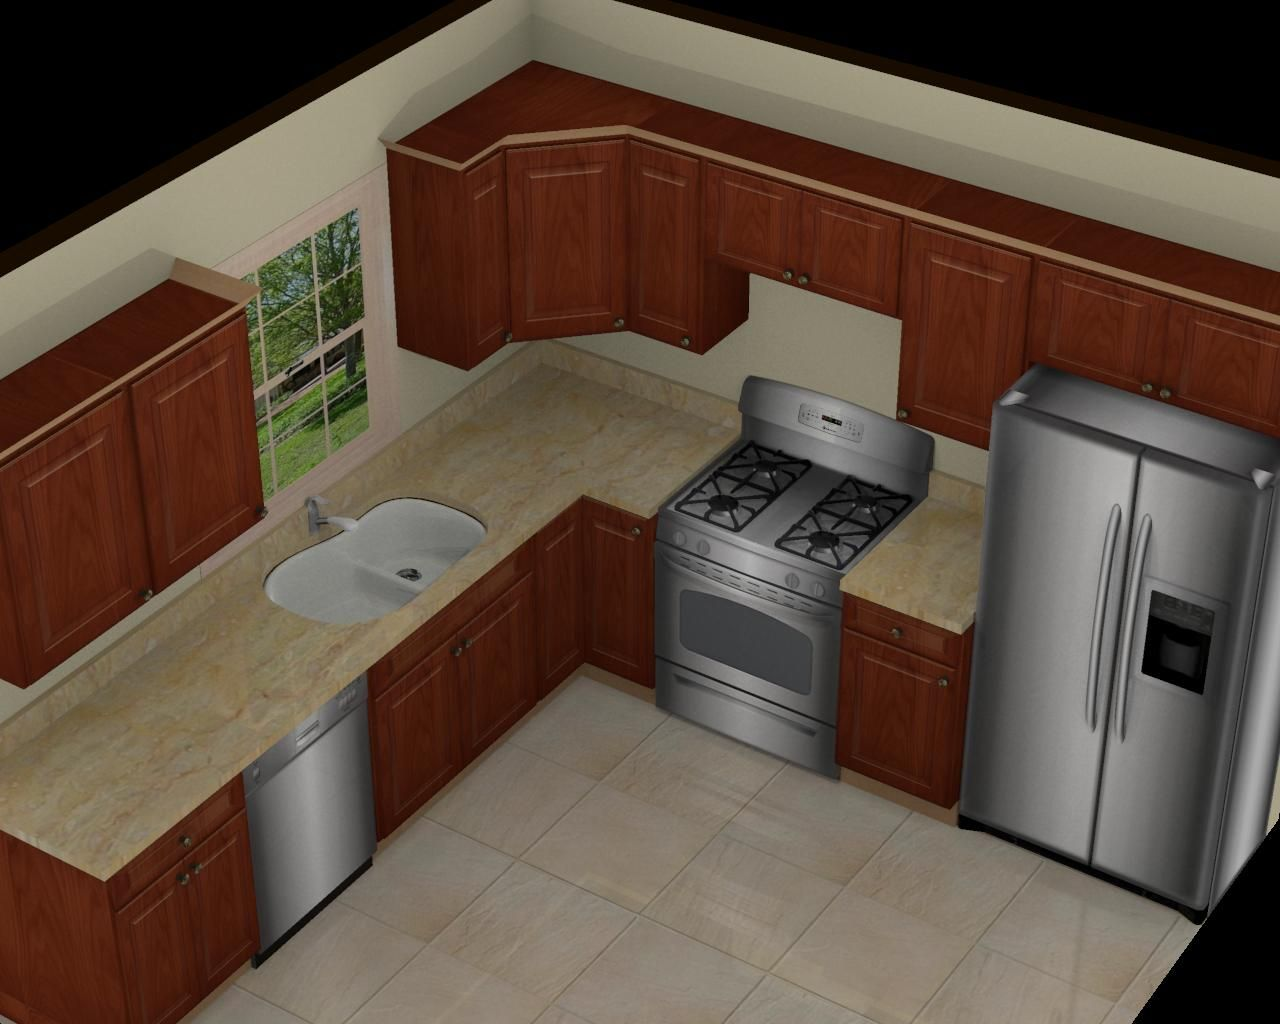 There Are Many Ideas 10 10 Kitchen Design That You Can Do To Remodel 10 X 10 Kitchens